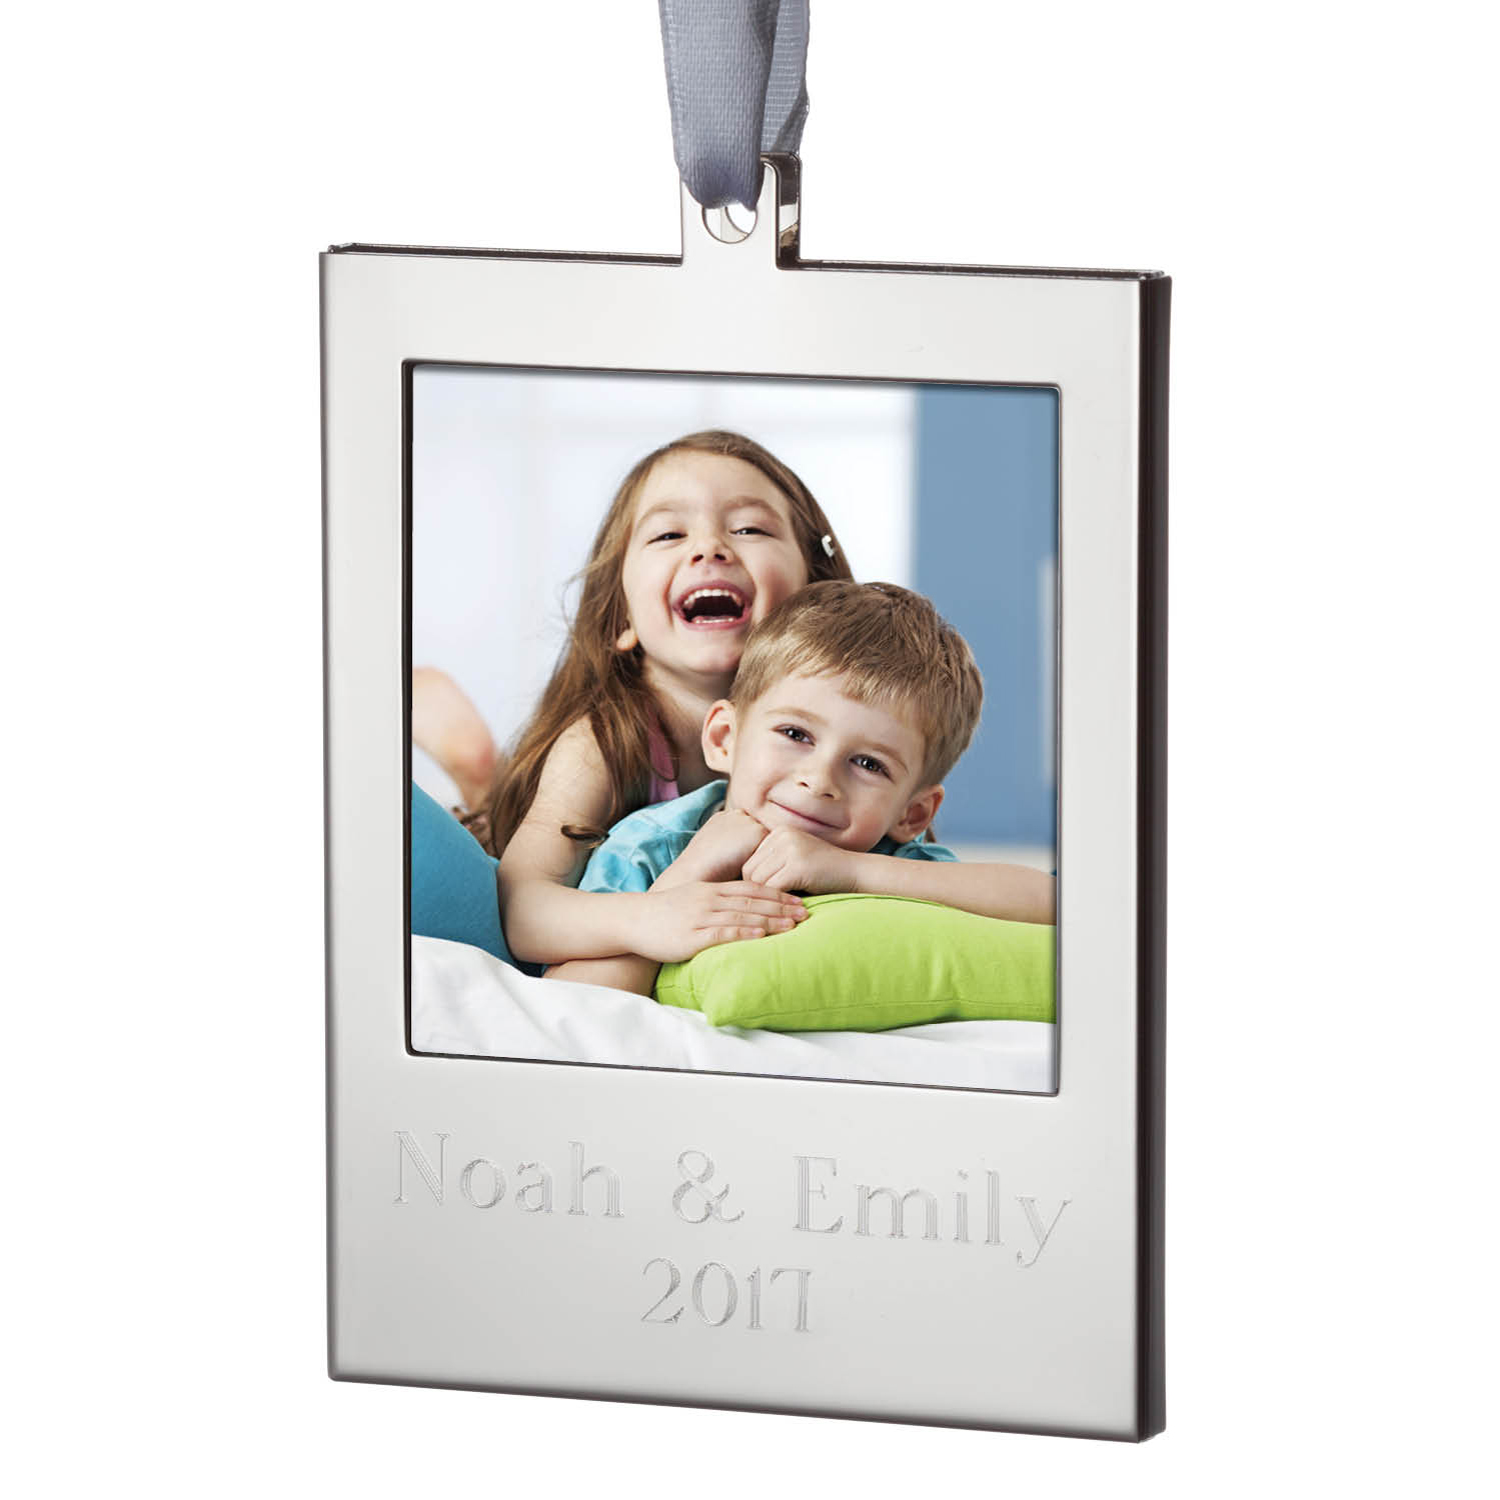 Personalized Silver Frame Ornament